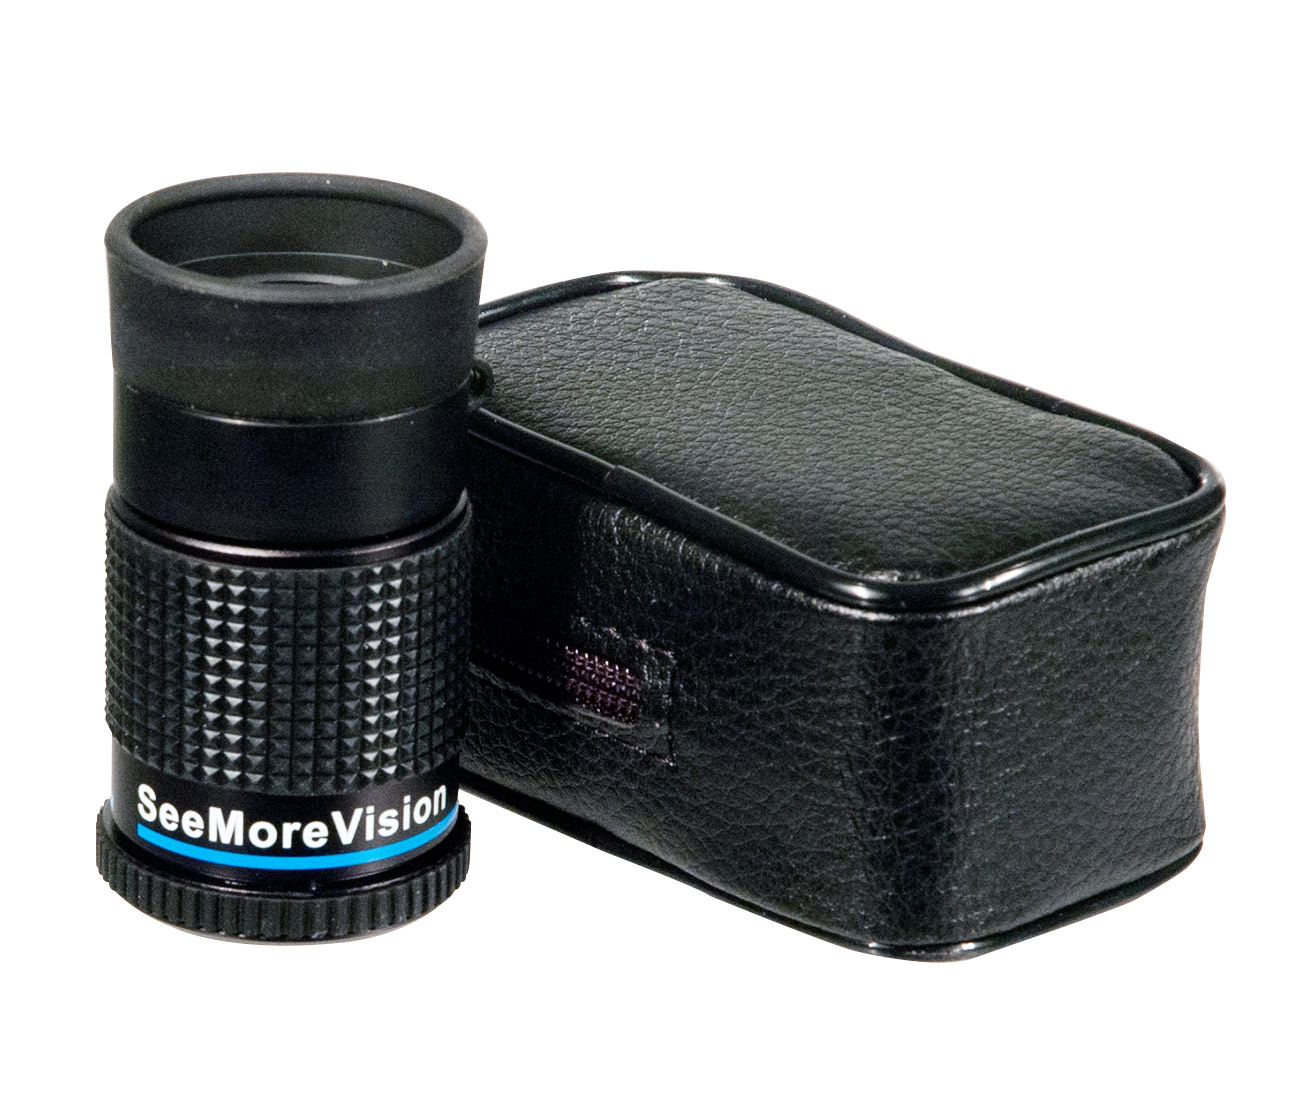 Near Focus Monocular - 4 x 12mm